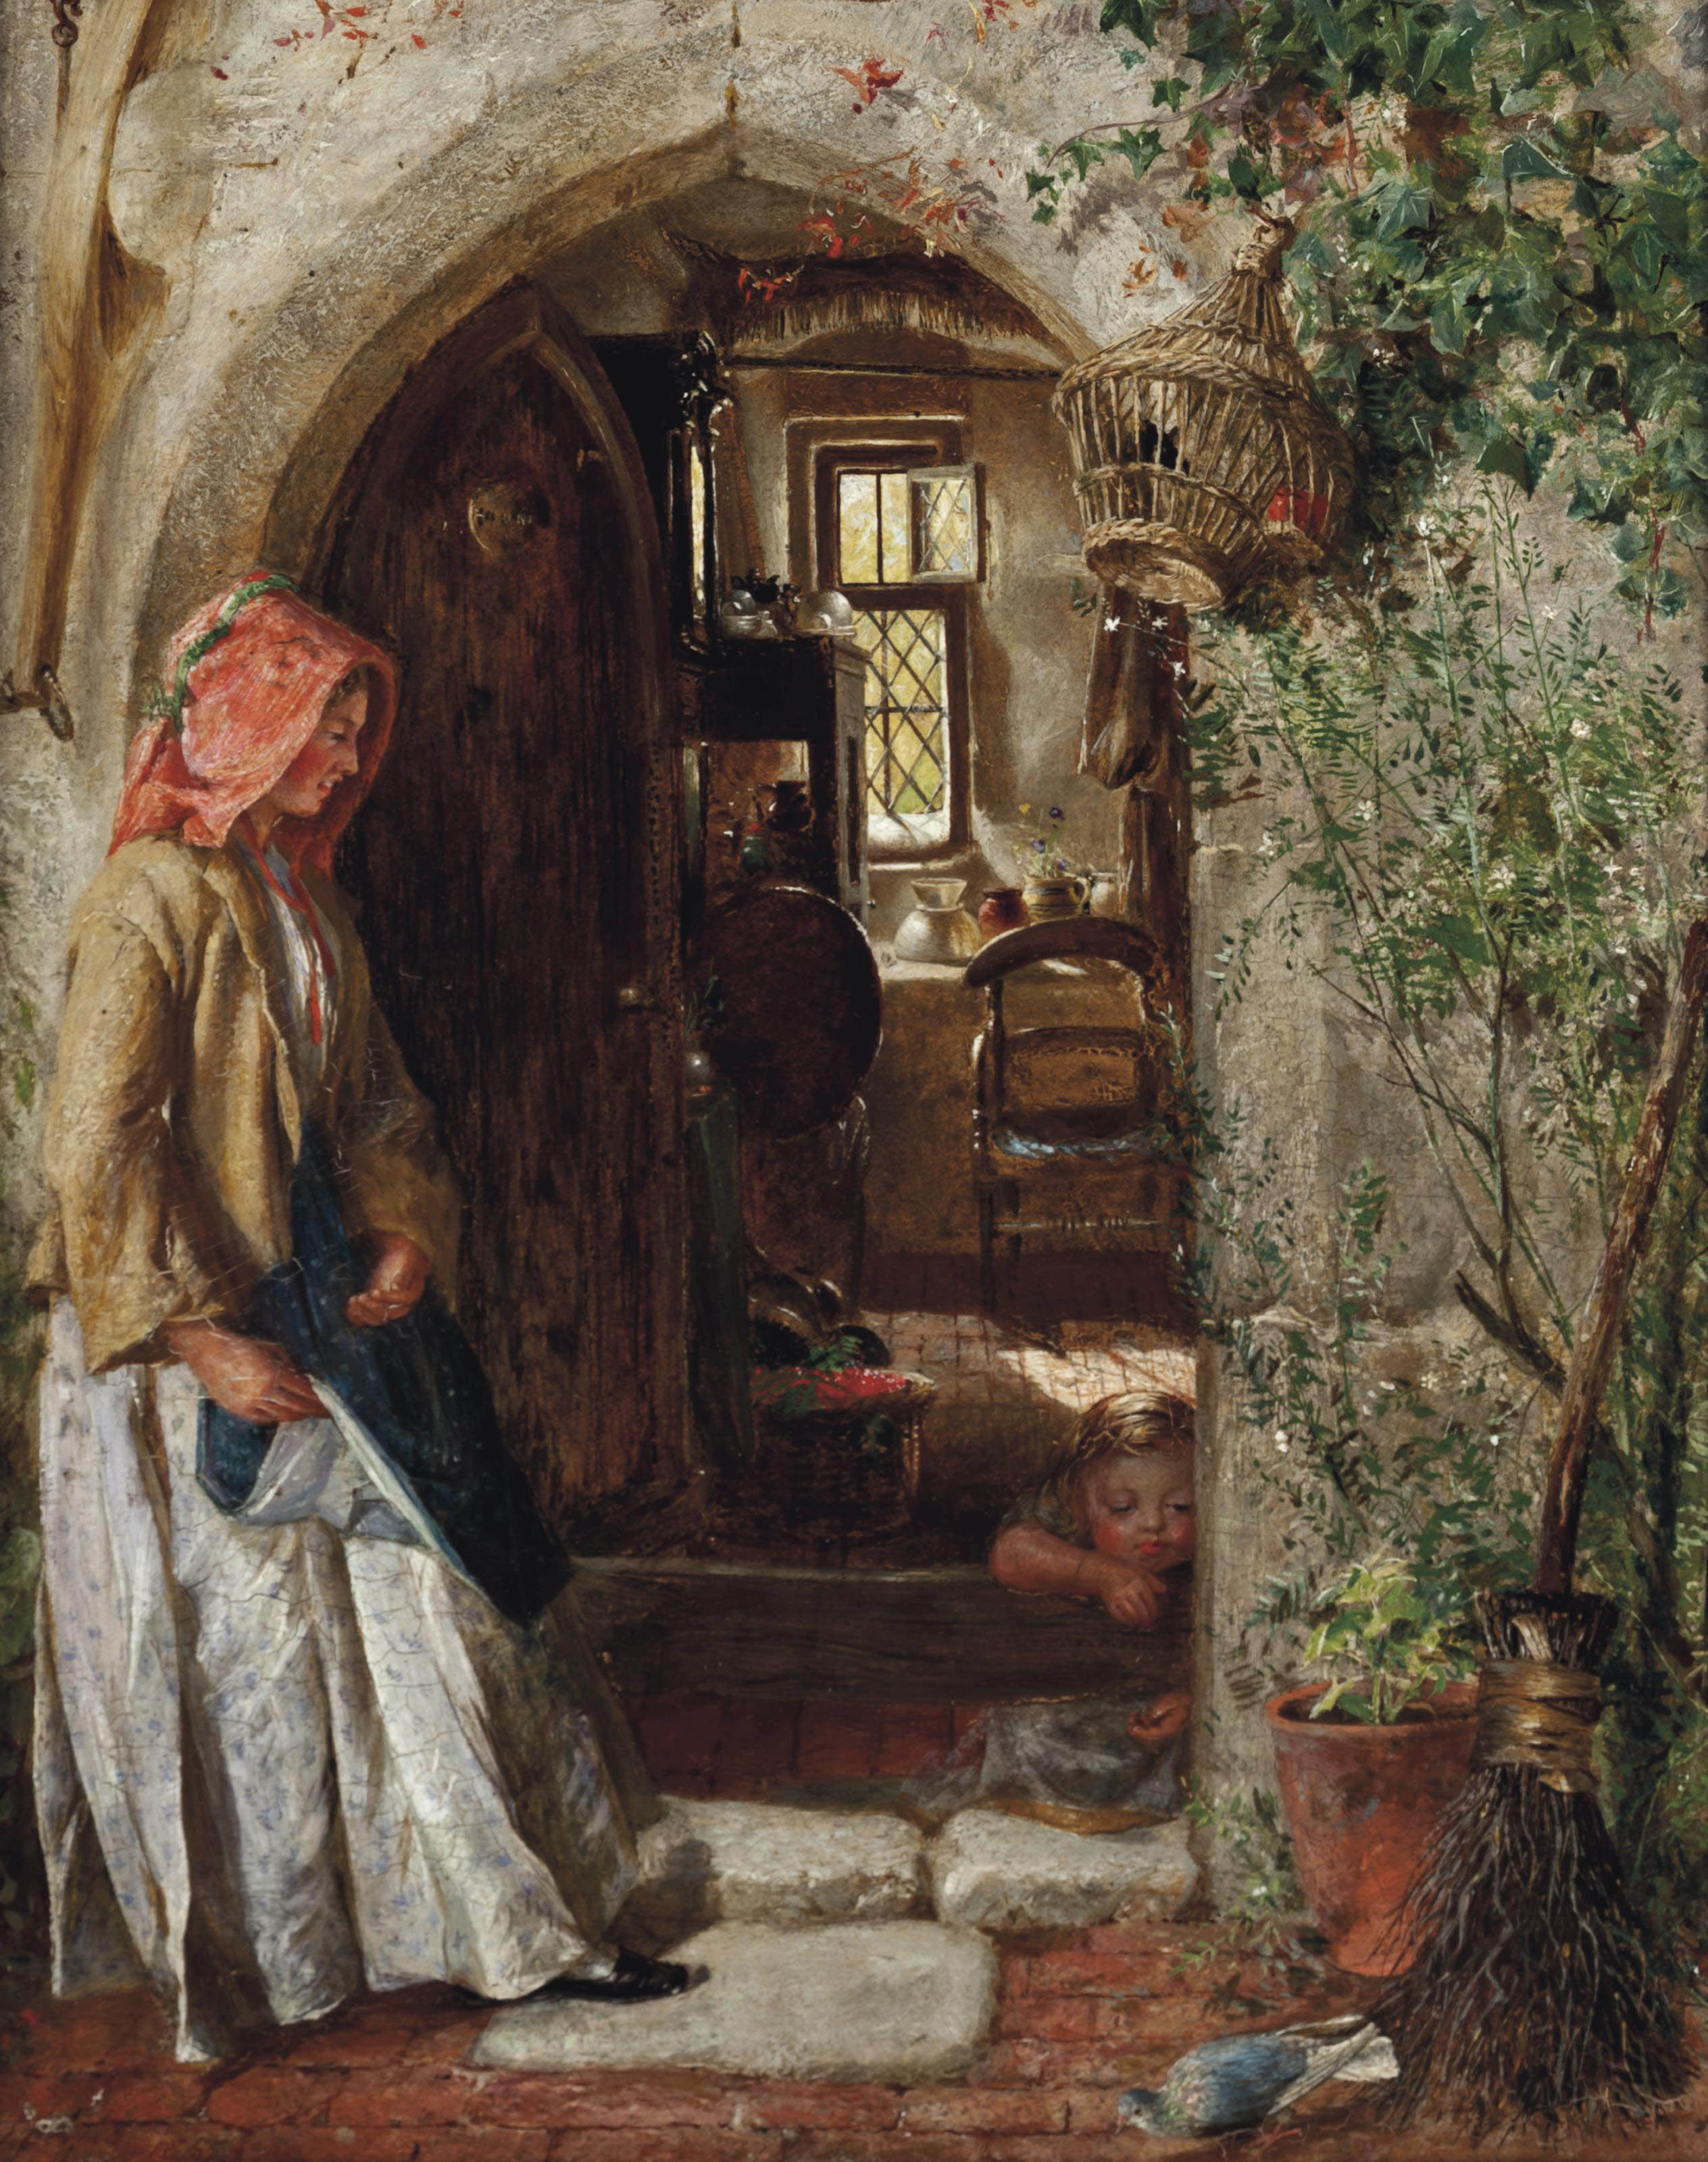 At the doorway